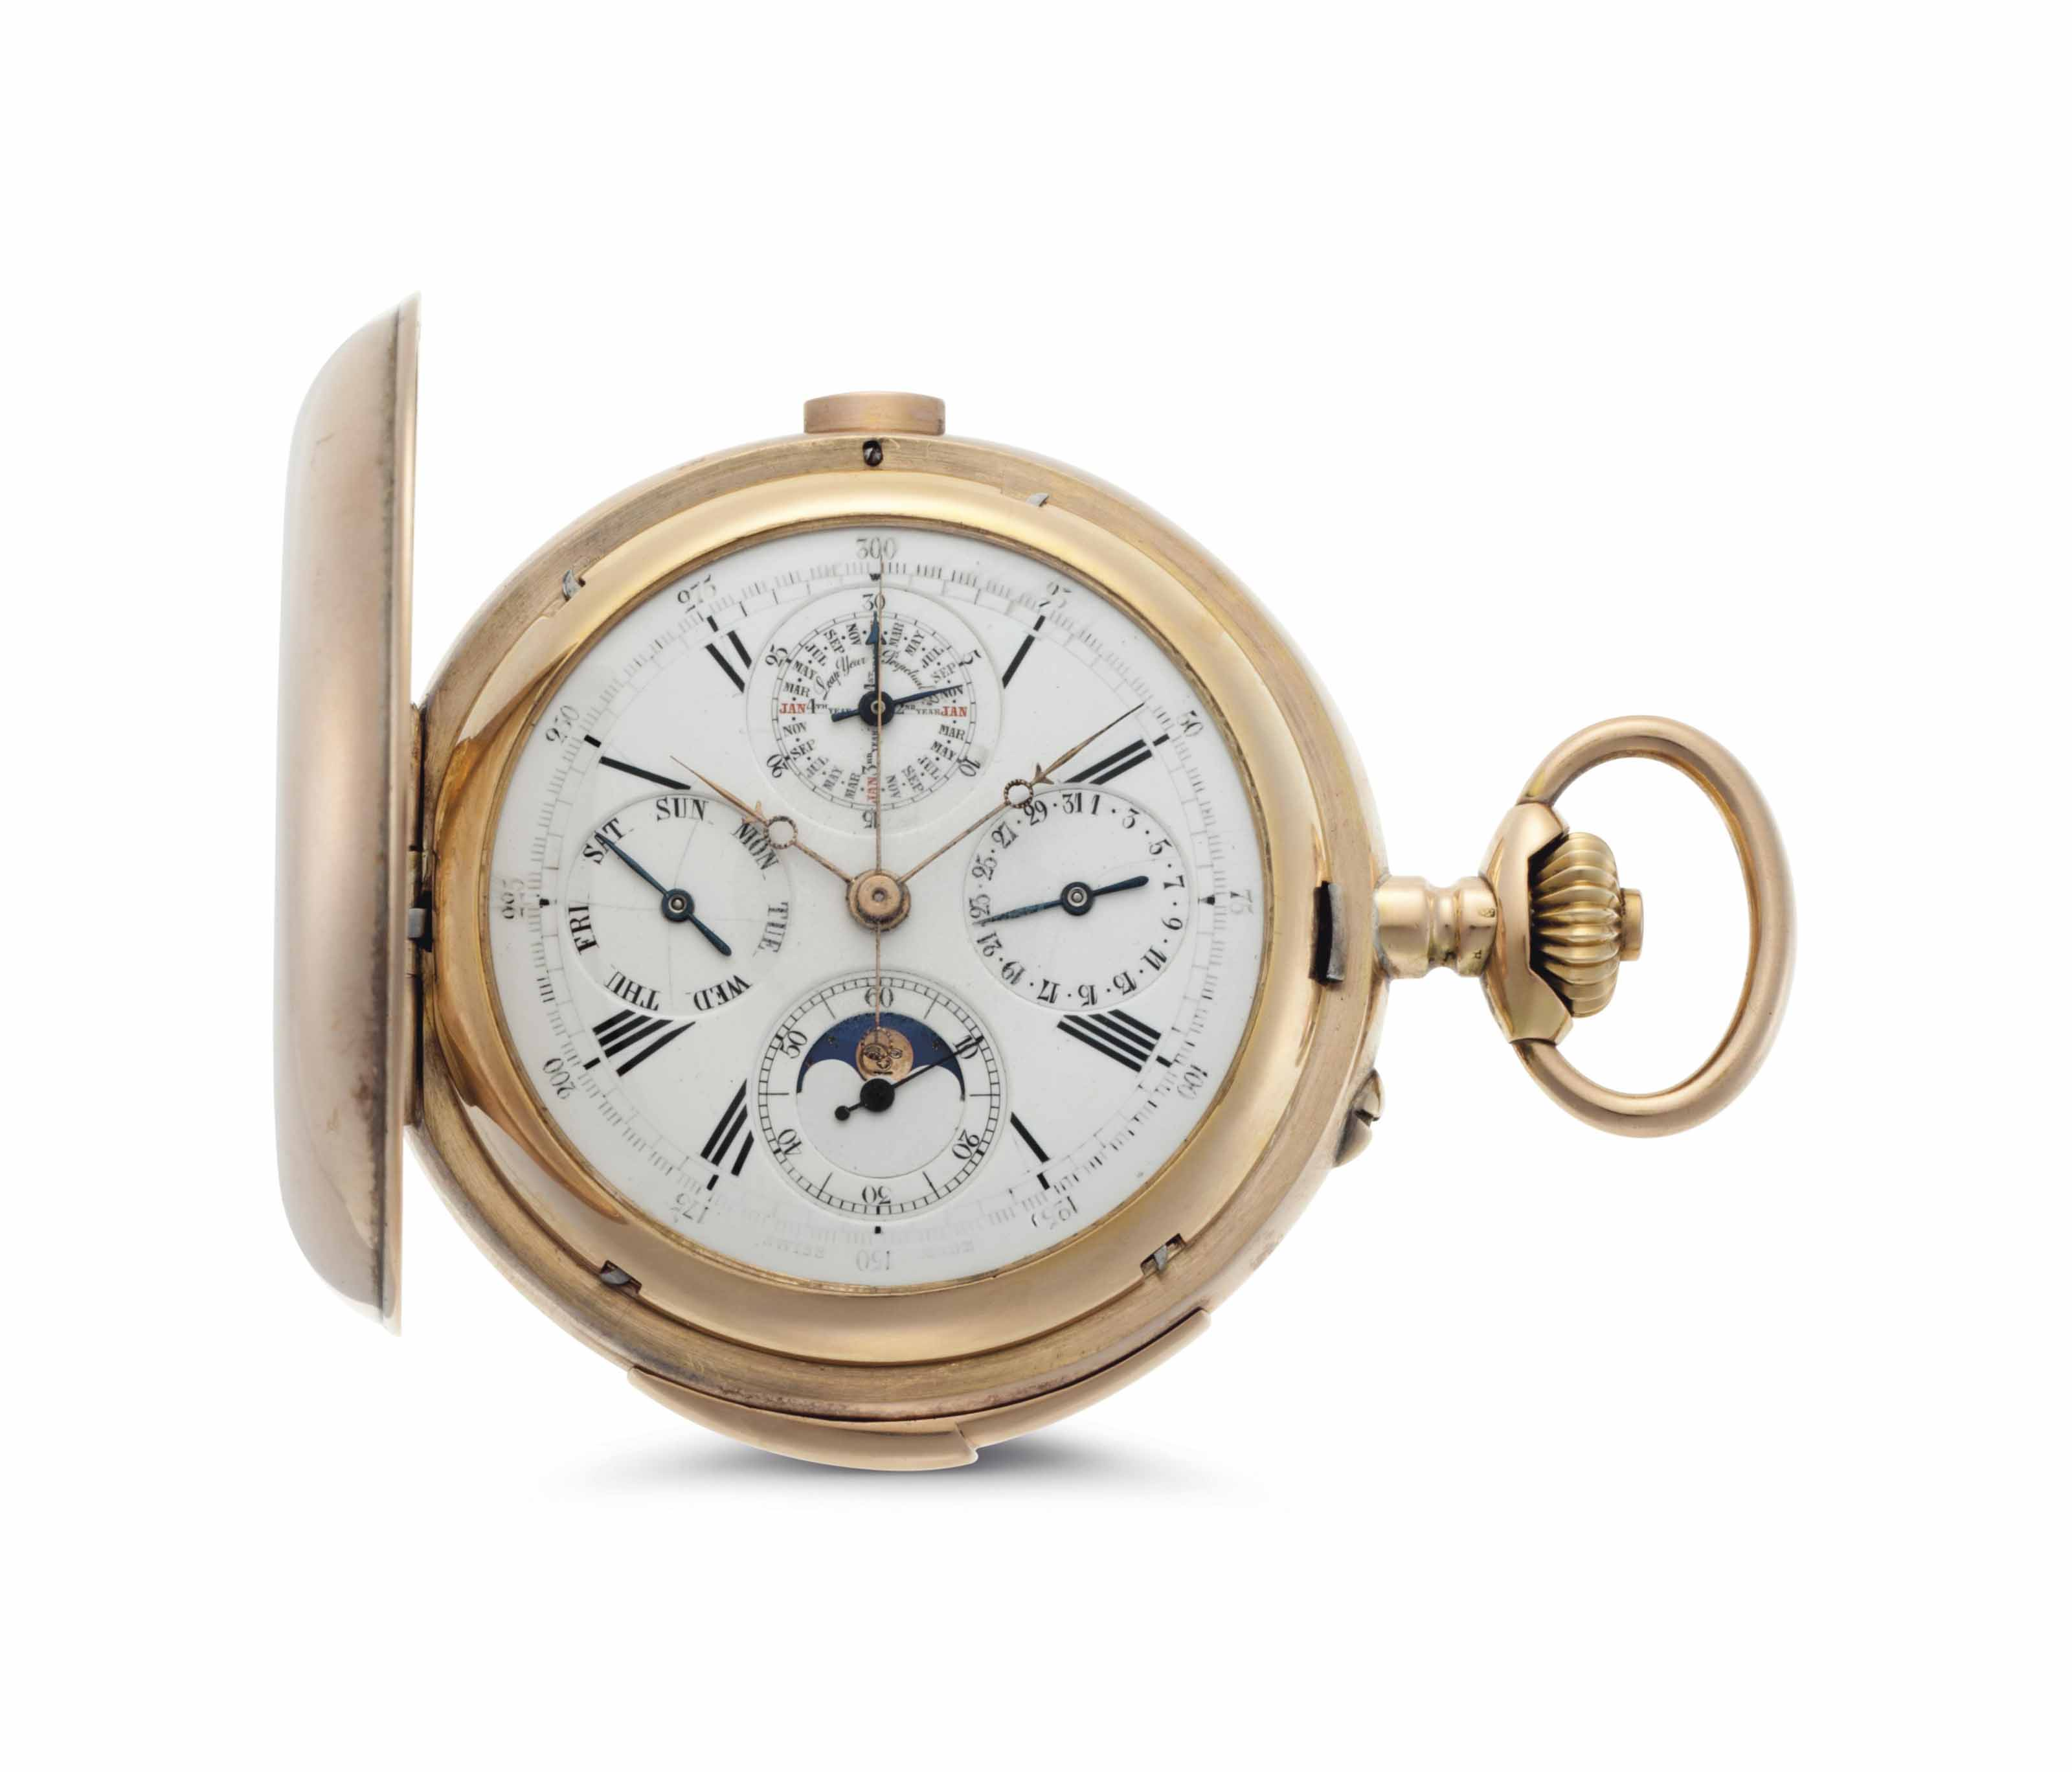 Dubois. An 18k Pink Gold Minute Repeating Perpetual Calendar Hunter Case Keyless Lever Pocket Watch with Moon Phases and Presentation Box.